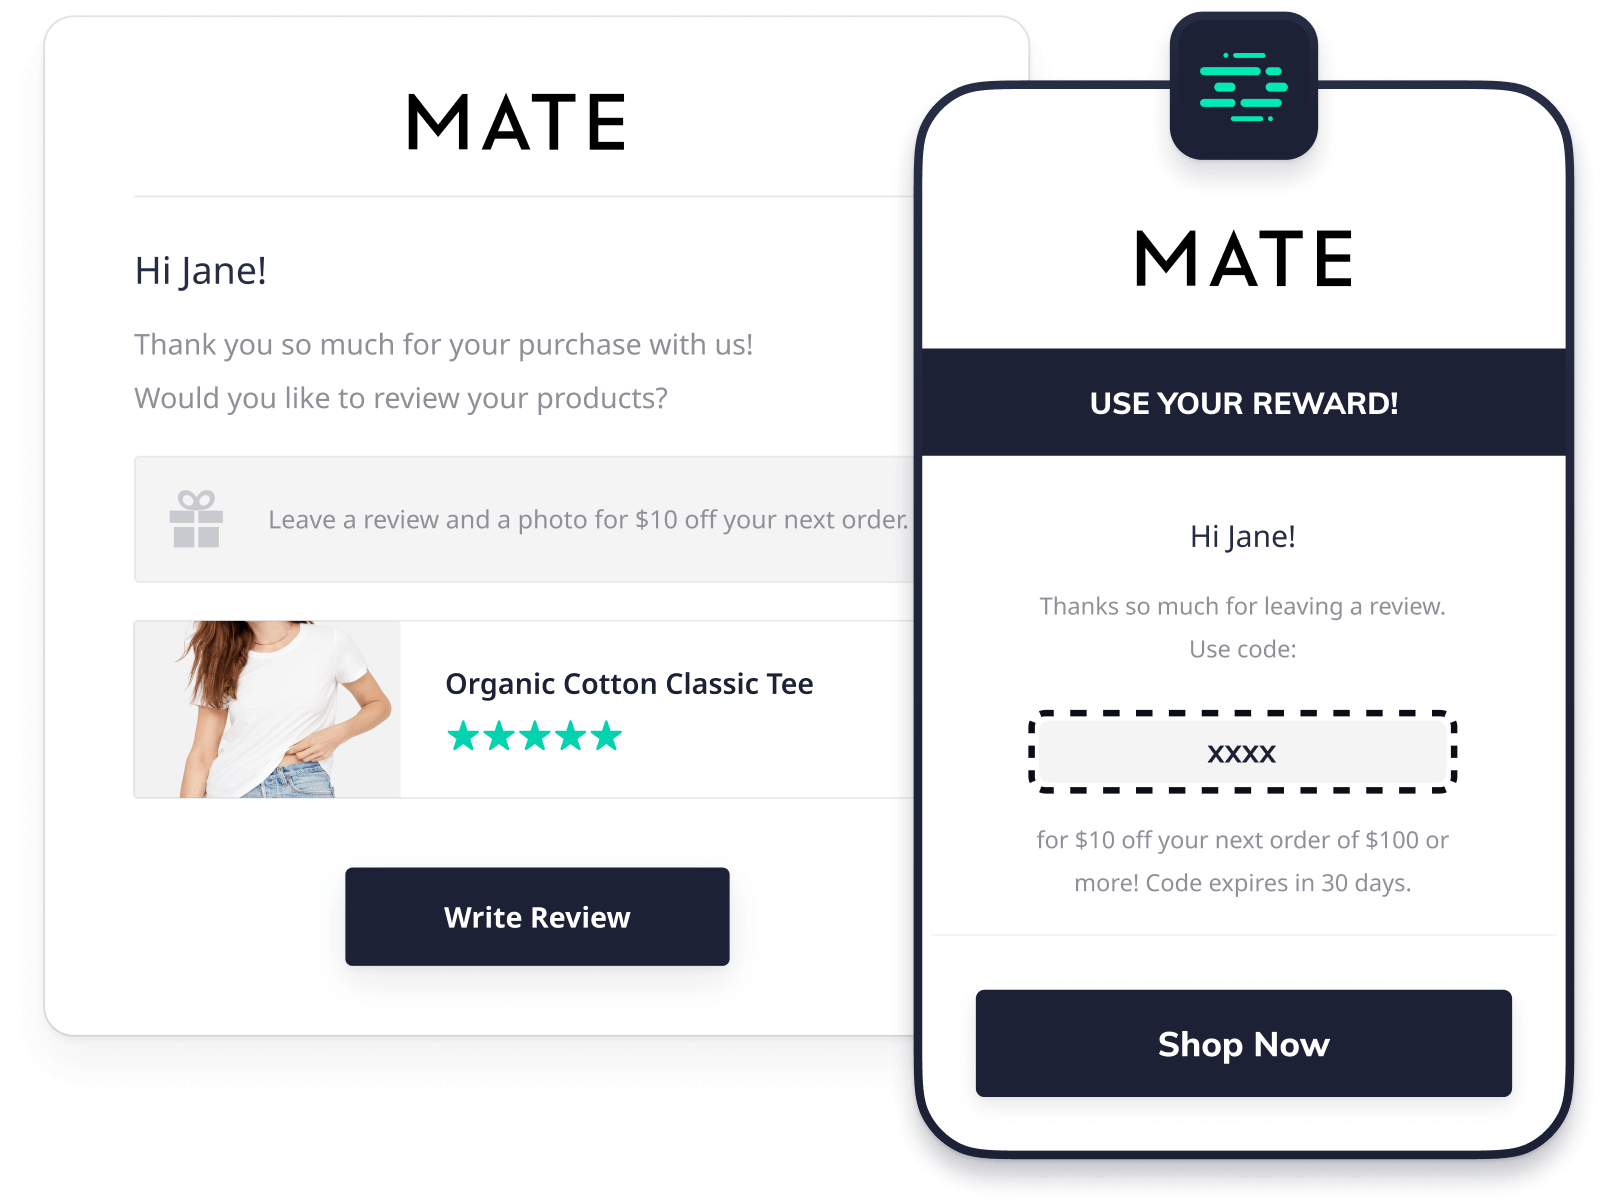 Review request email with coupon for MATE the Label